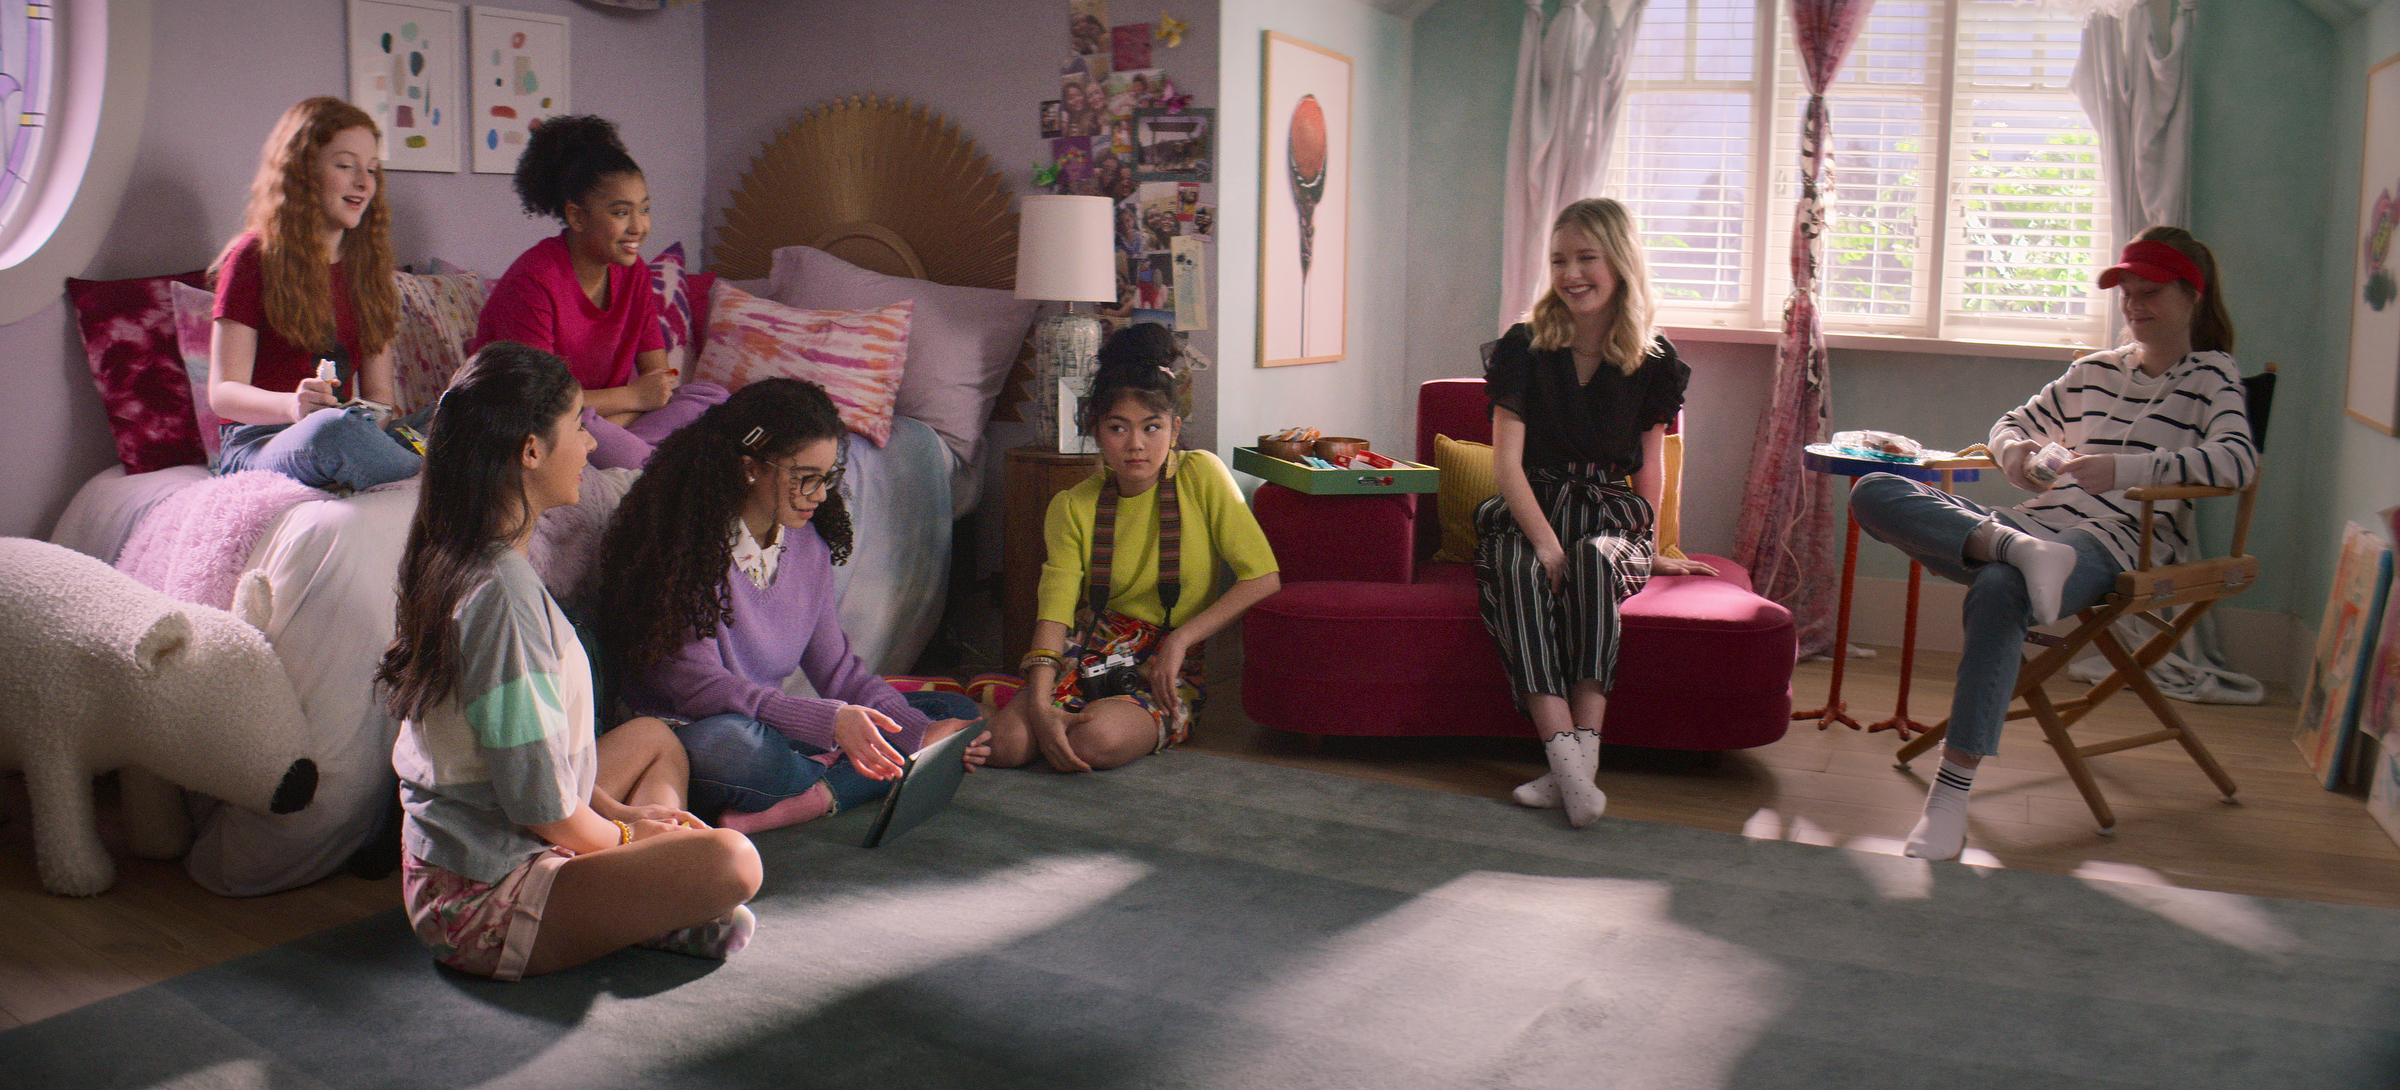 THE BABY-SITTERS CLUB (L to R) VIVIAN WATSON as MALLORY PIKE, KYNDRA SANCHEZ as DAWN SCHAFER, ANAIS LEE as JESSI RAMSEY, MALIA BAKER as MARY ANNE SPIER, MOMONA TAMADA as CLAUDIA KISHI, SHAY RUDOLPH as STACEY MCGILL, and SOPHIE GRACE as KRISTY THOMAS in episode 201 of THE BABY-SITTERS CLUB Cr. COURTESY OF NETFLIX © 2021